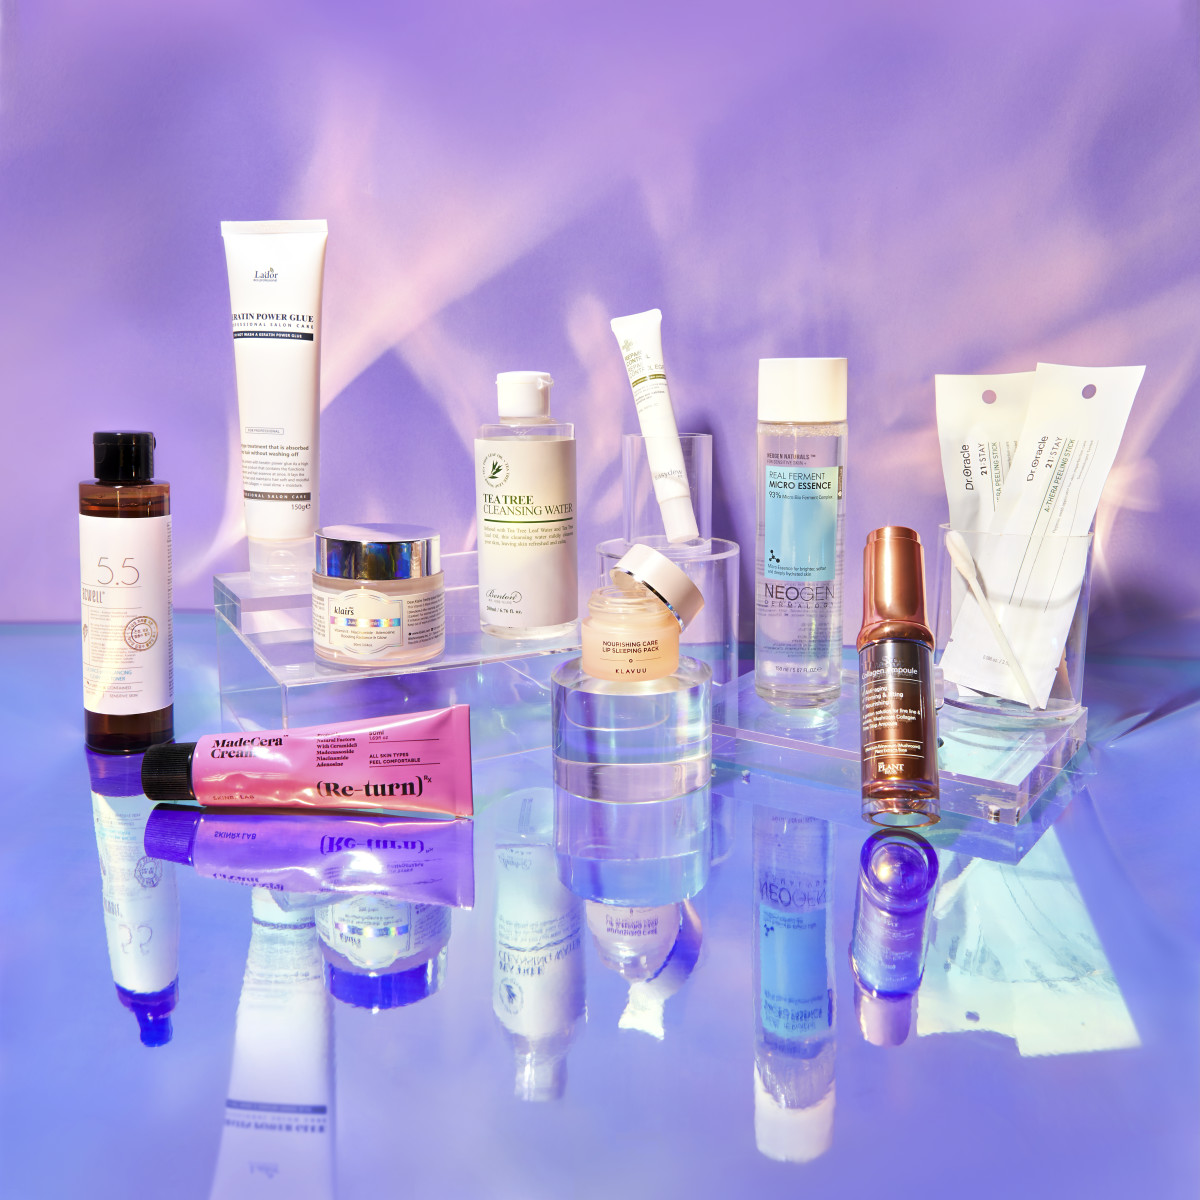 Using Local Classifieds For Health and Beauty Products